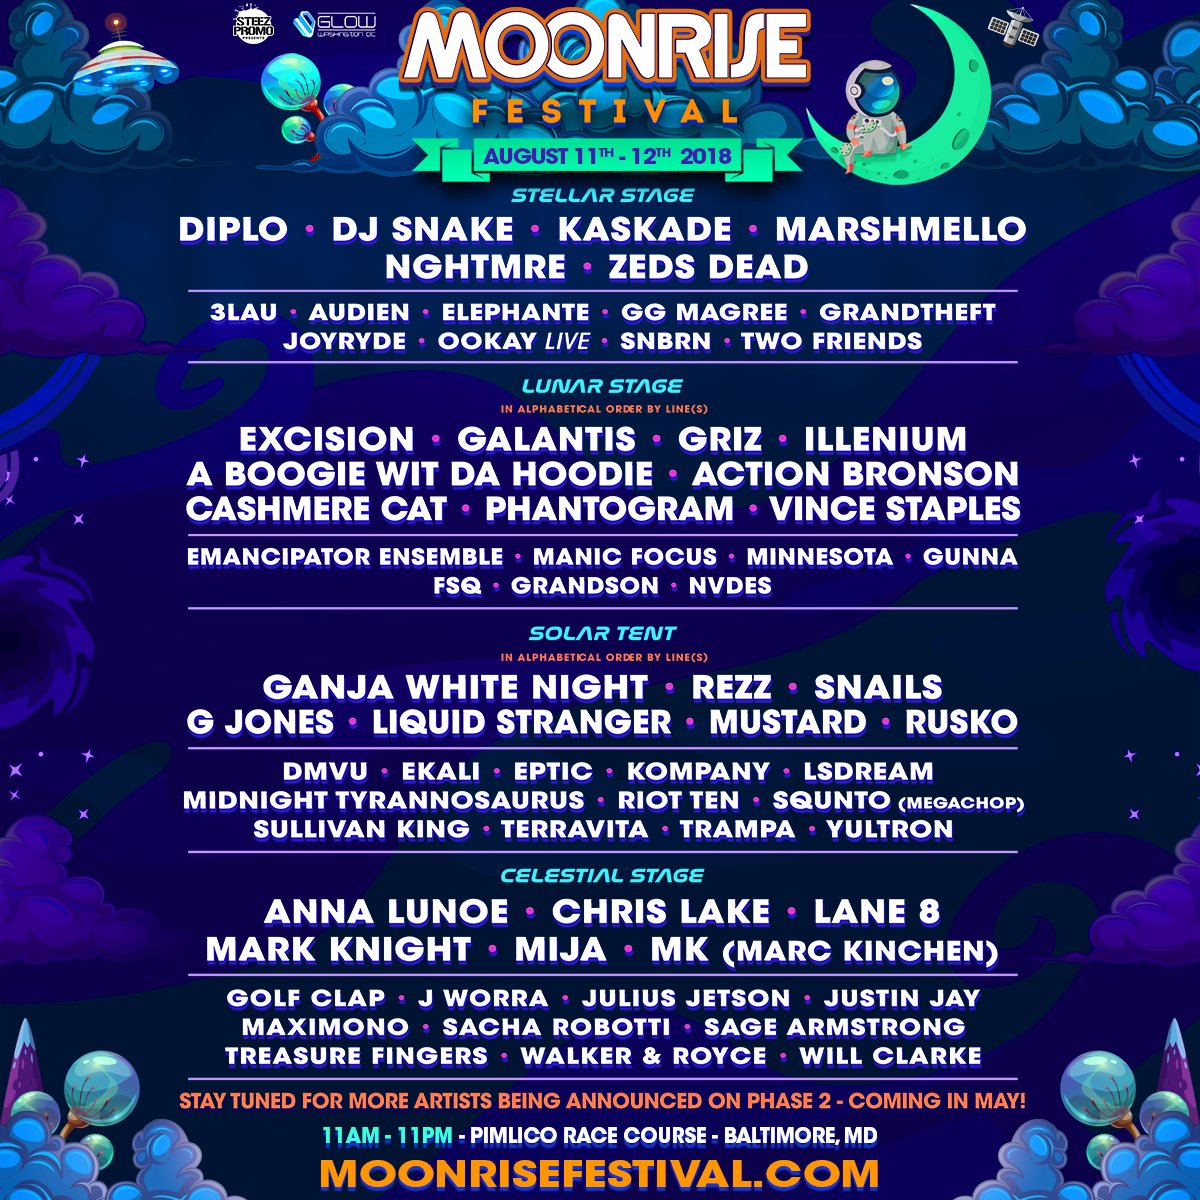 Moonrise Festival 2018 Lineup - Tunes to Get You Hyped for Moonrise Festival 2018